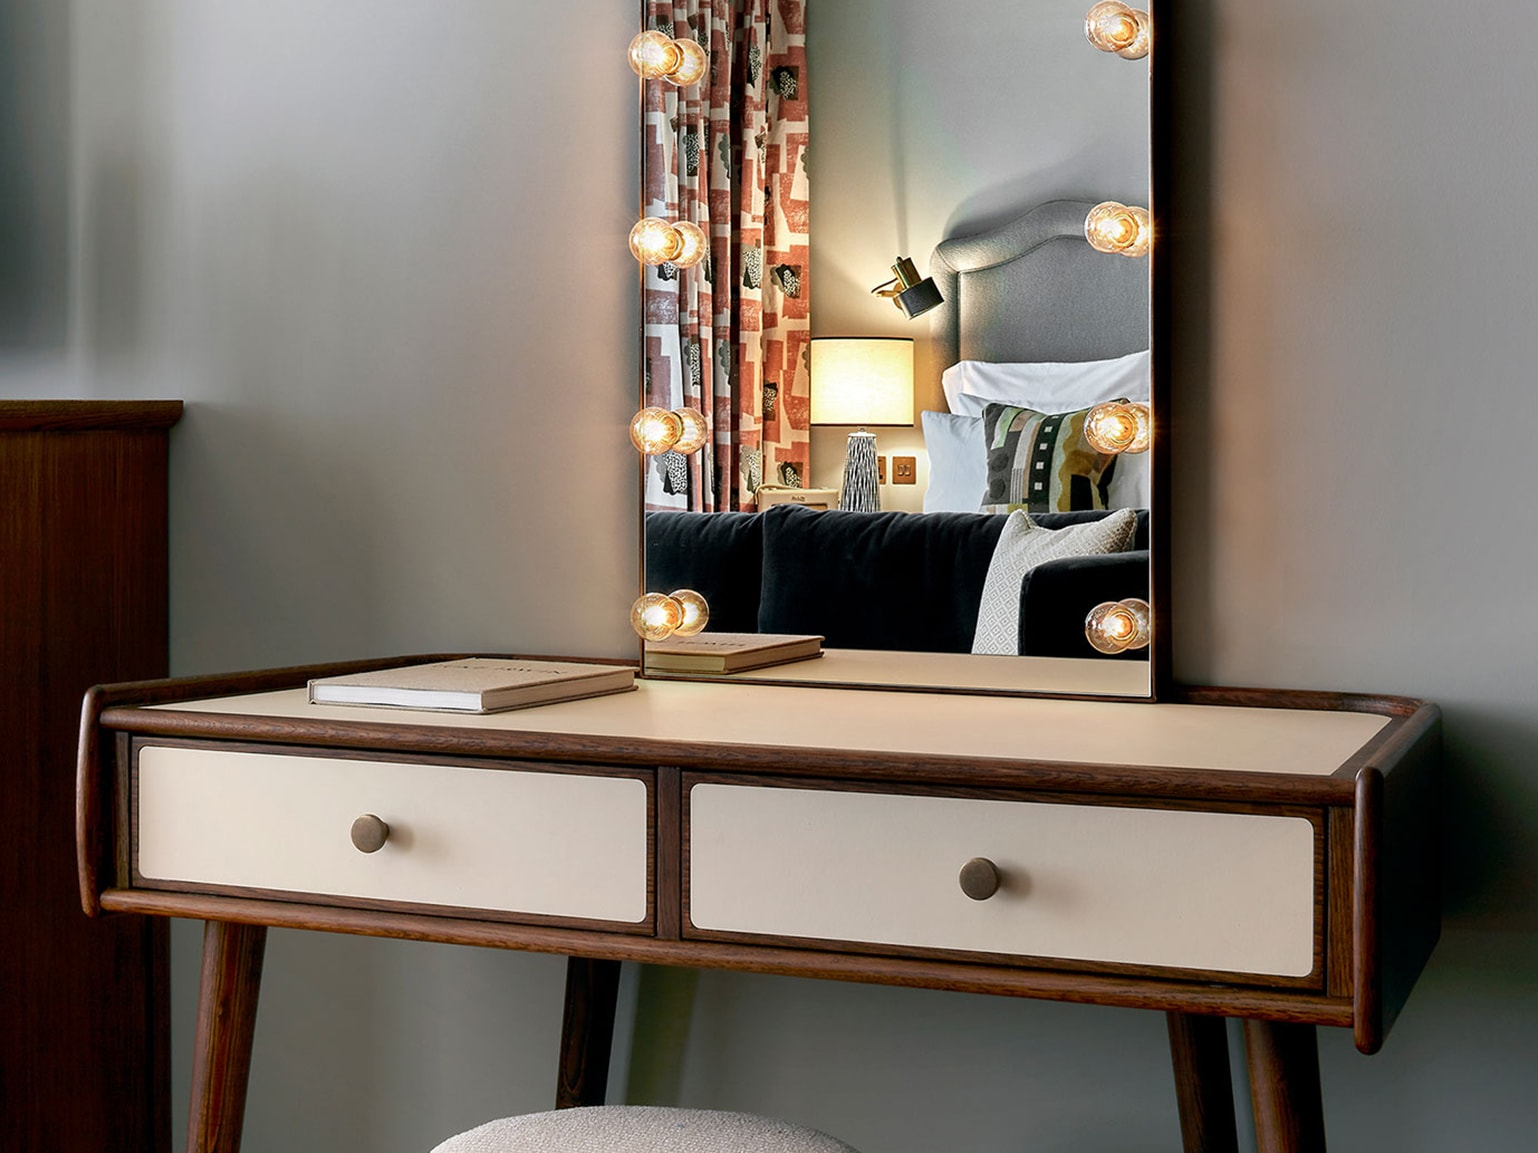 A dresser with a mirror that has lightbulbs going around it.